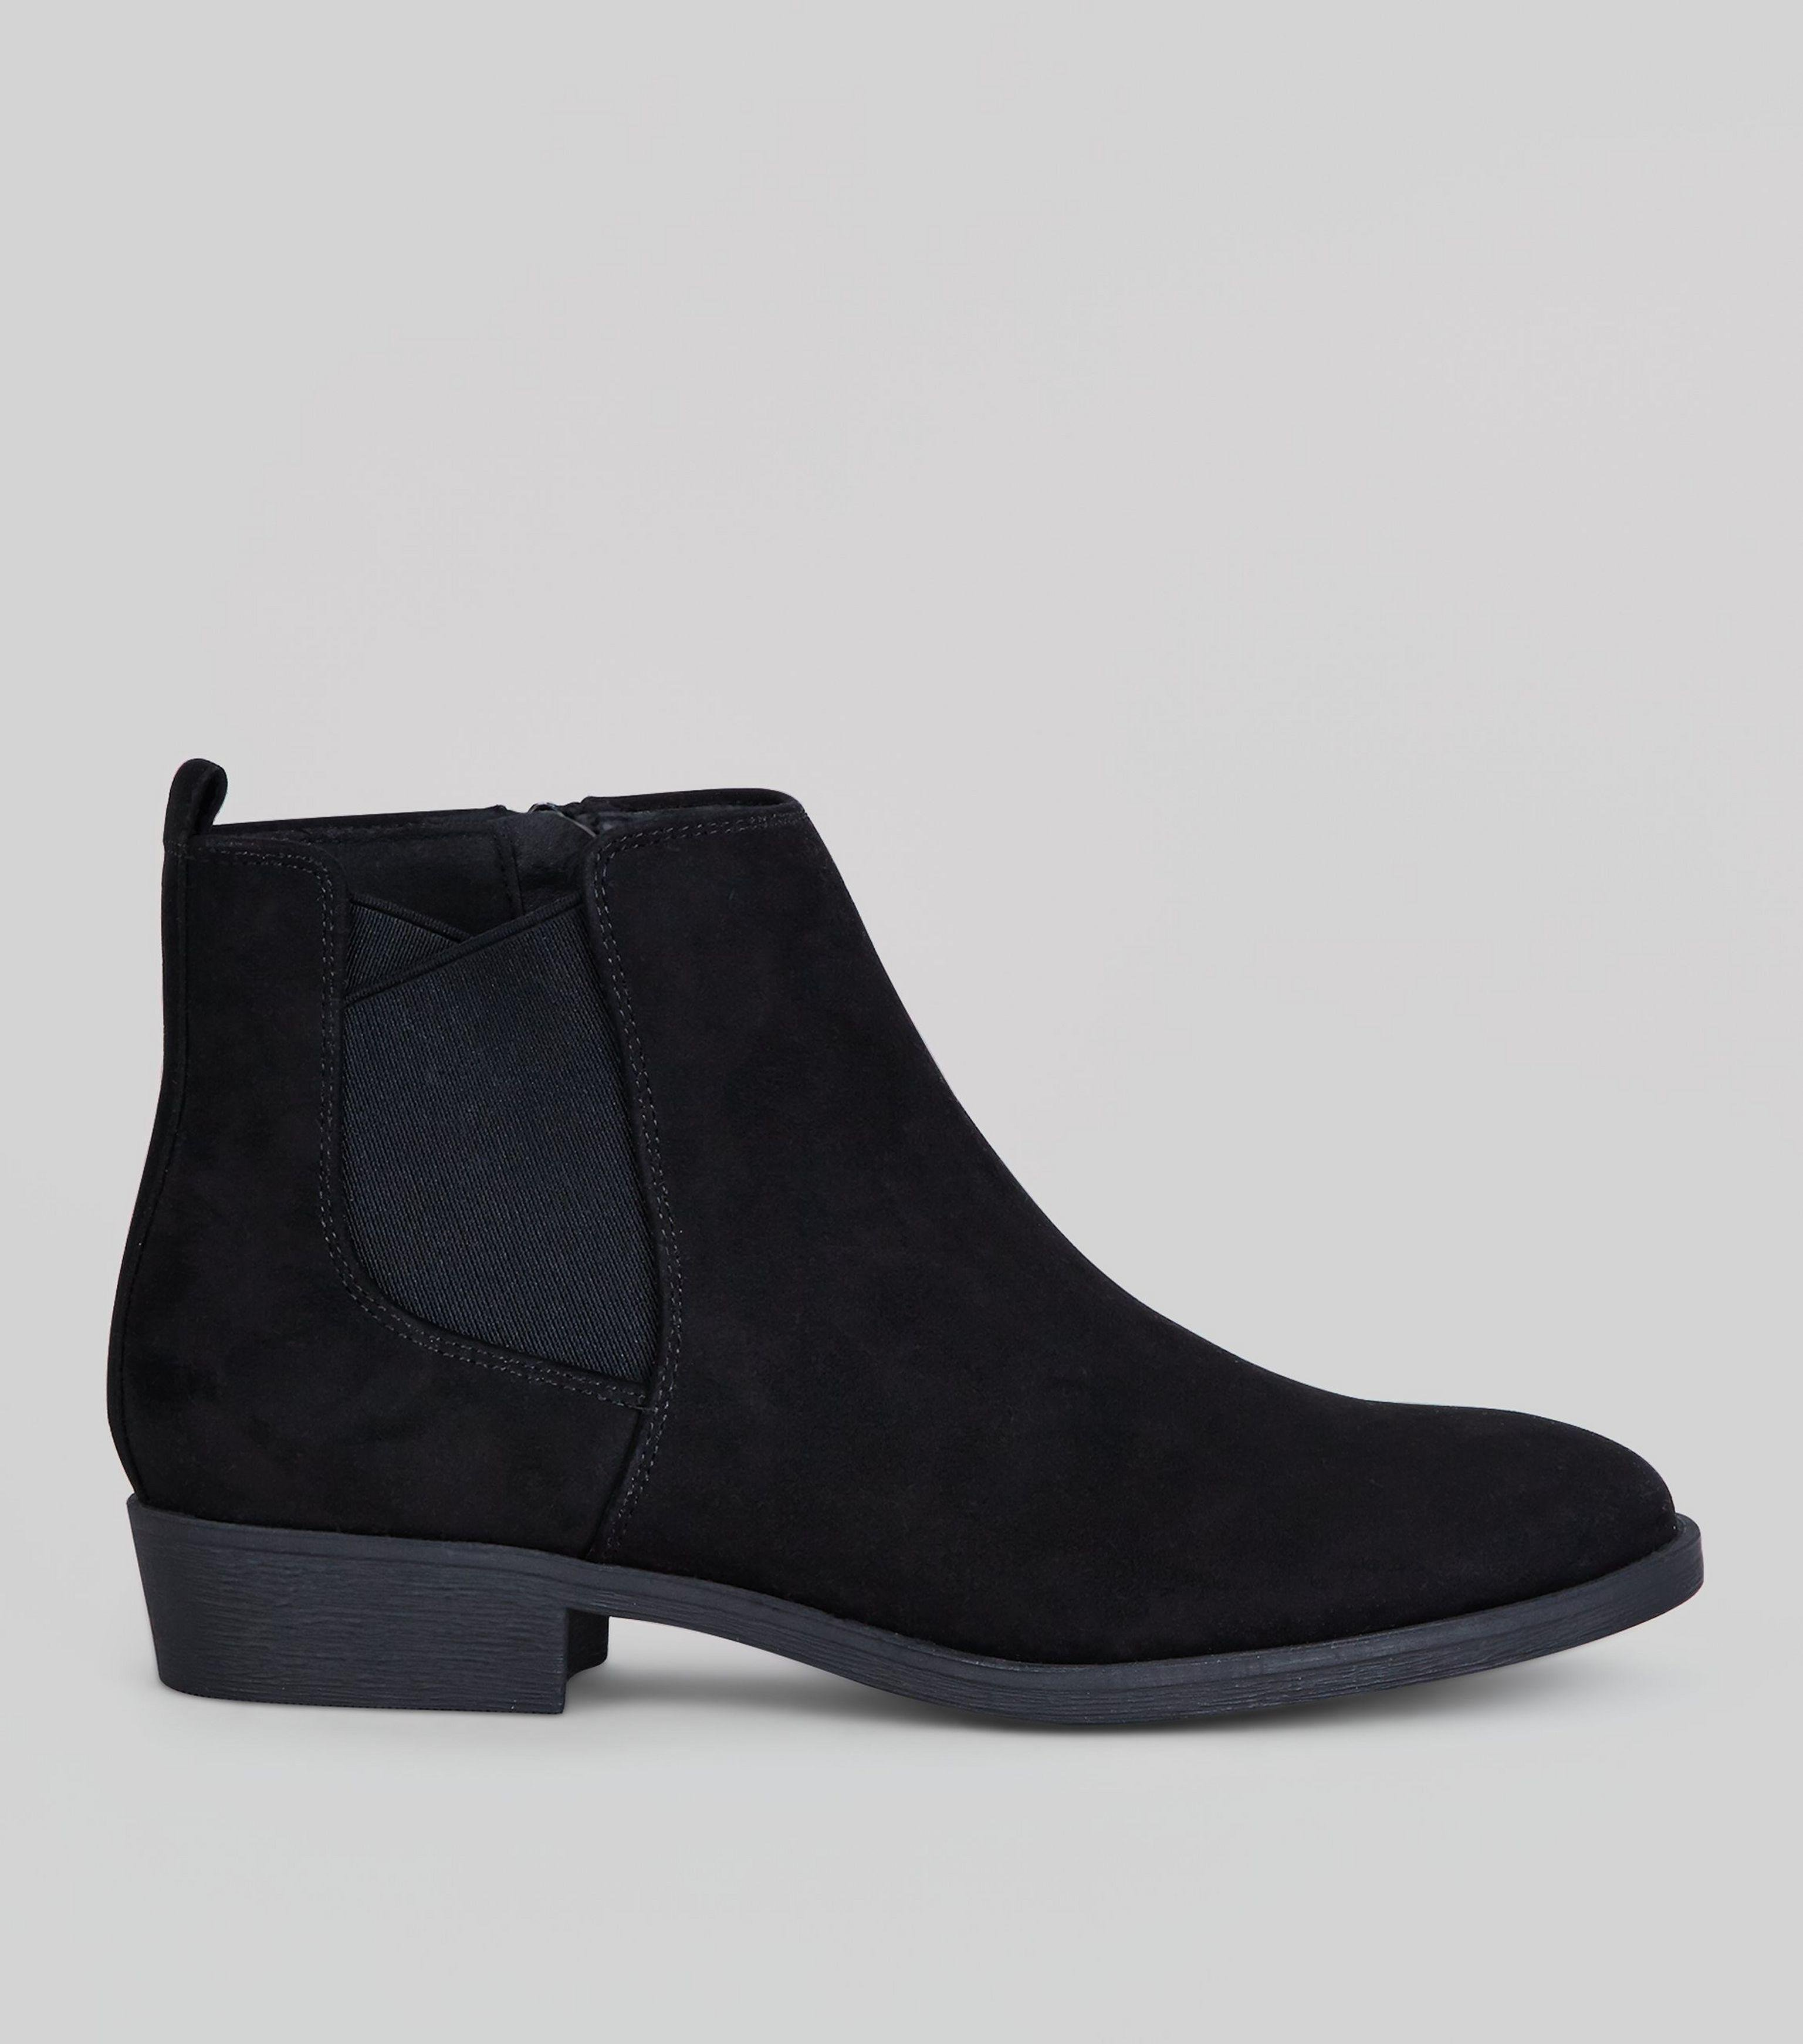 New Look Chelsea Boot In Black free shipping in China 6juSLR